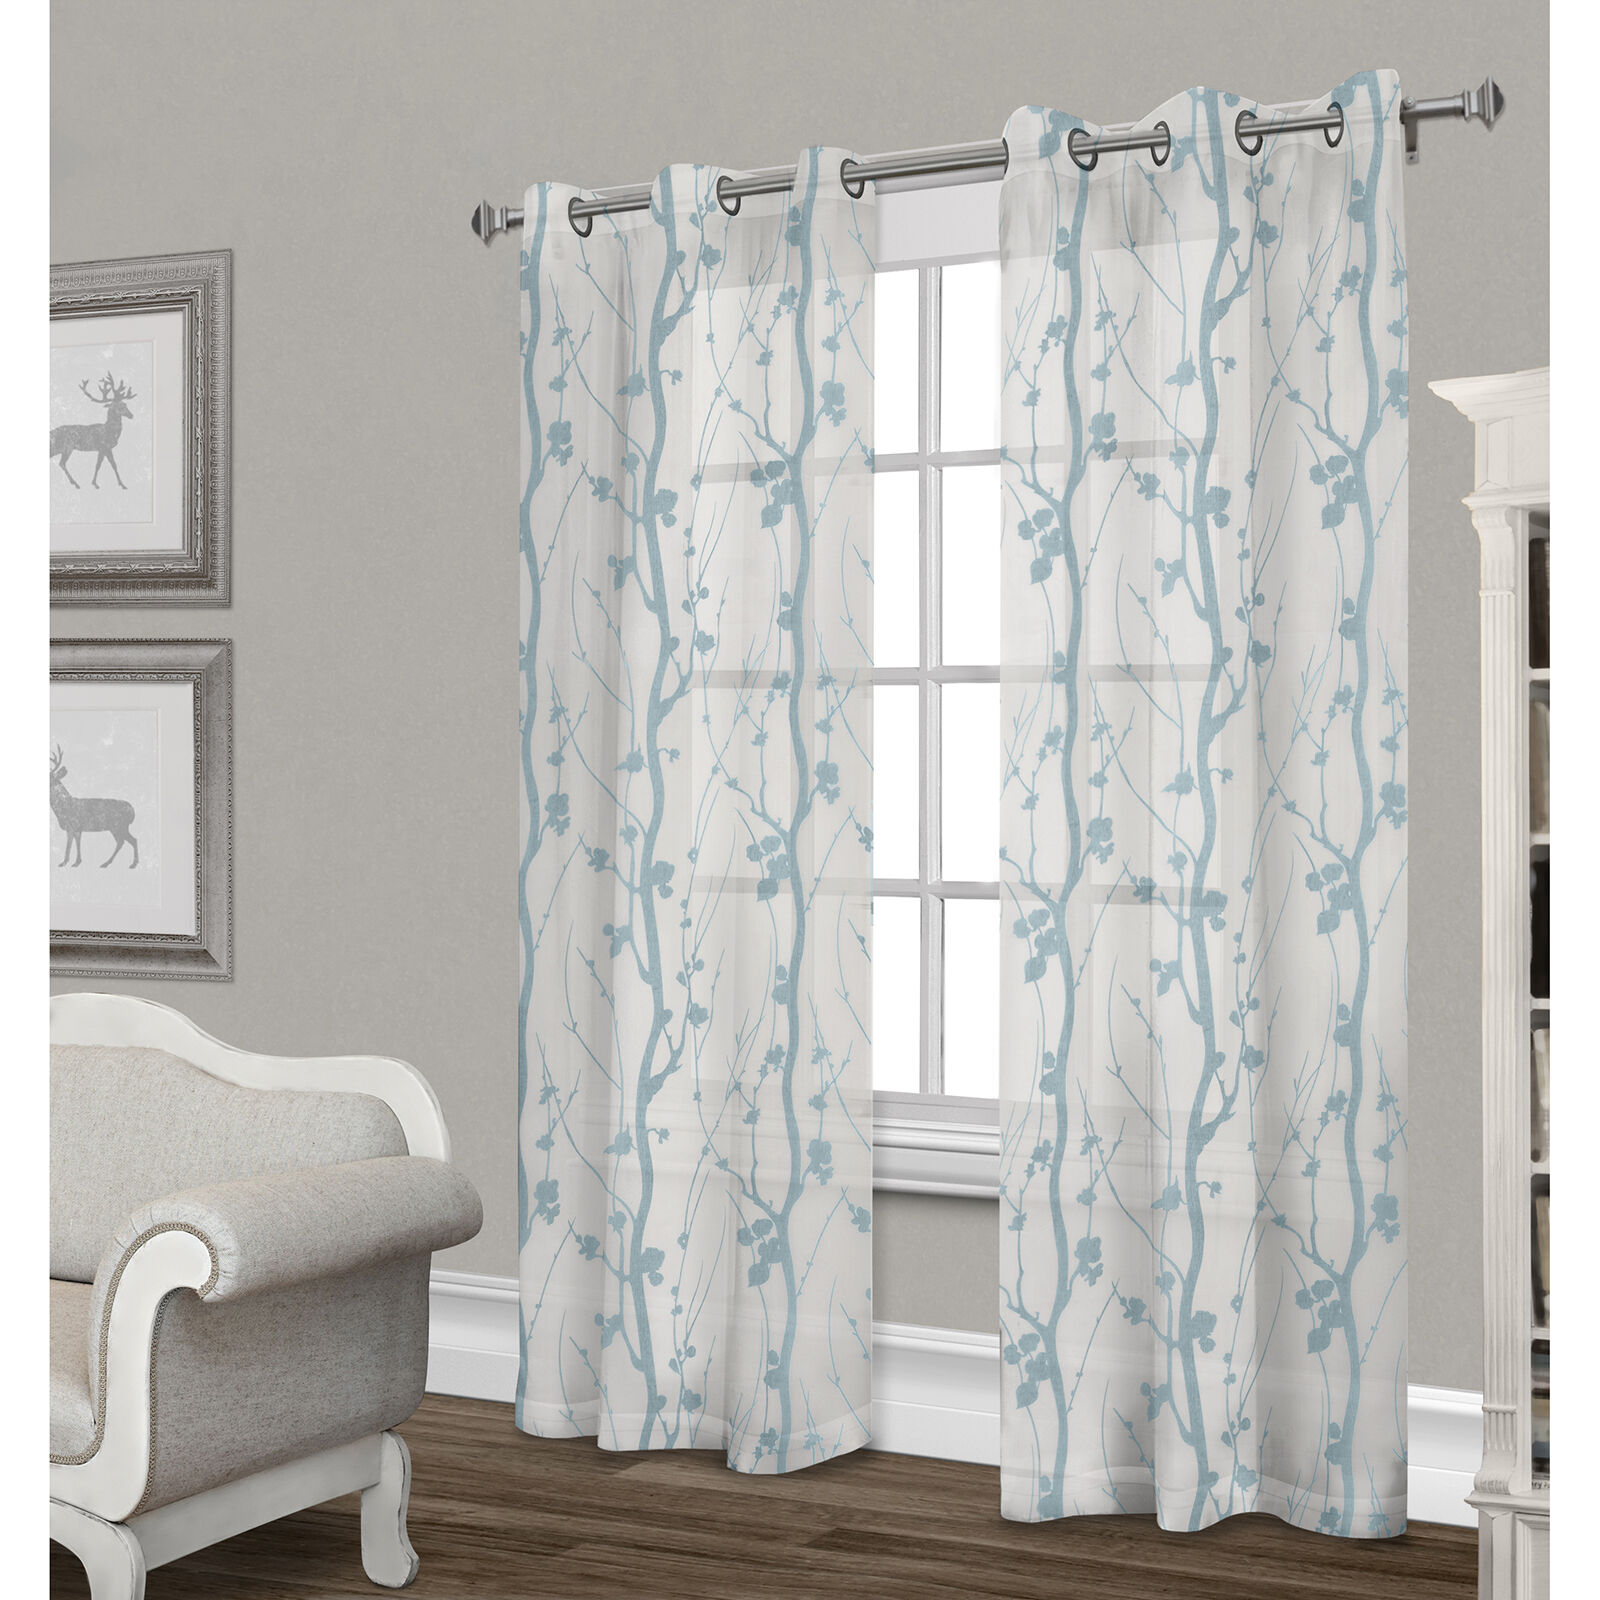 Corfu Sheer Curtain Panel White & Teal 84 In At Home